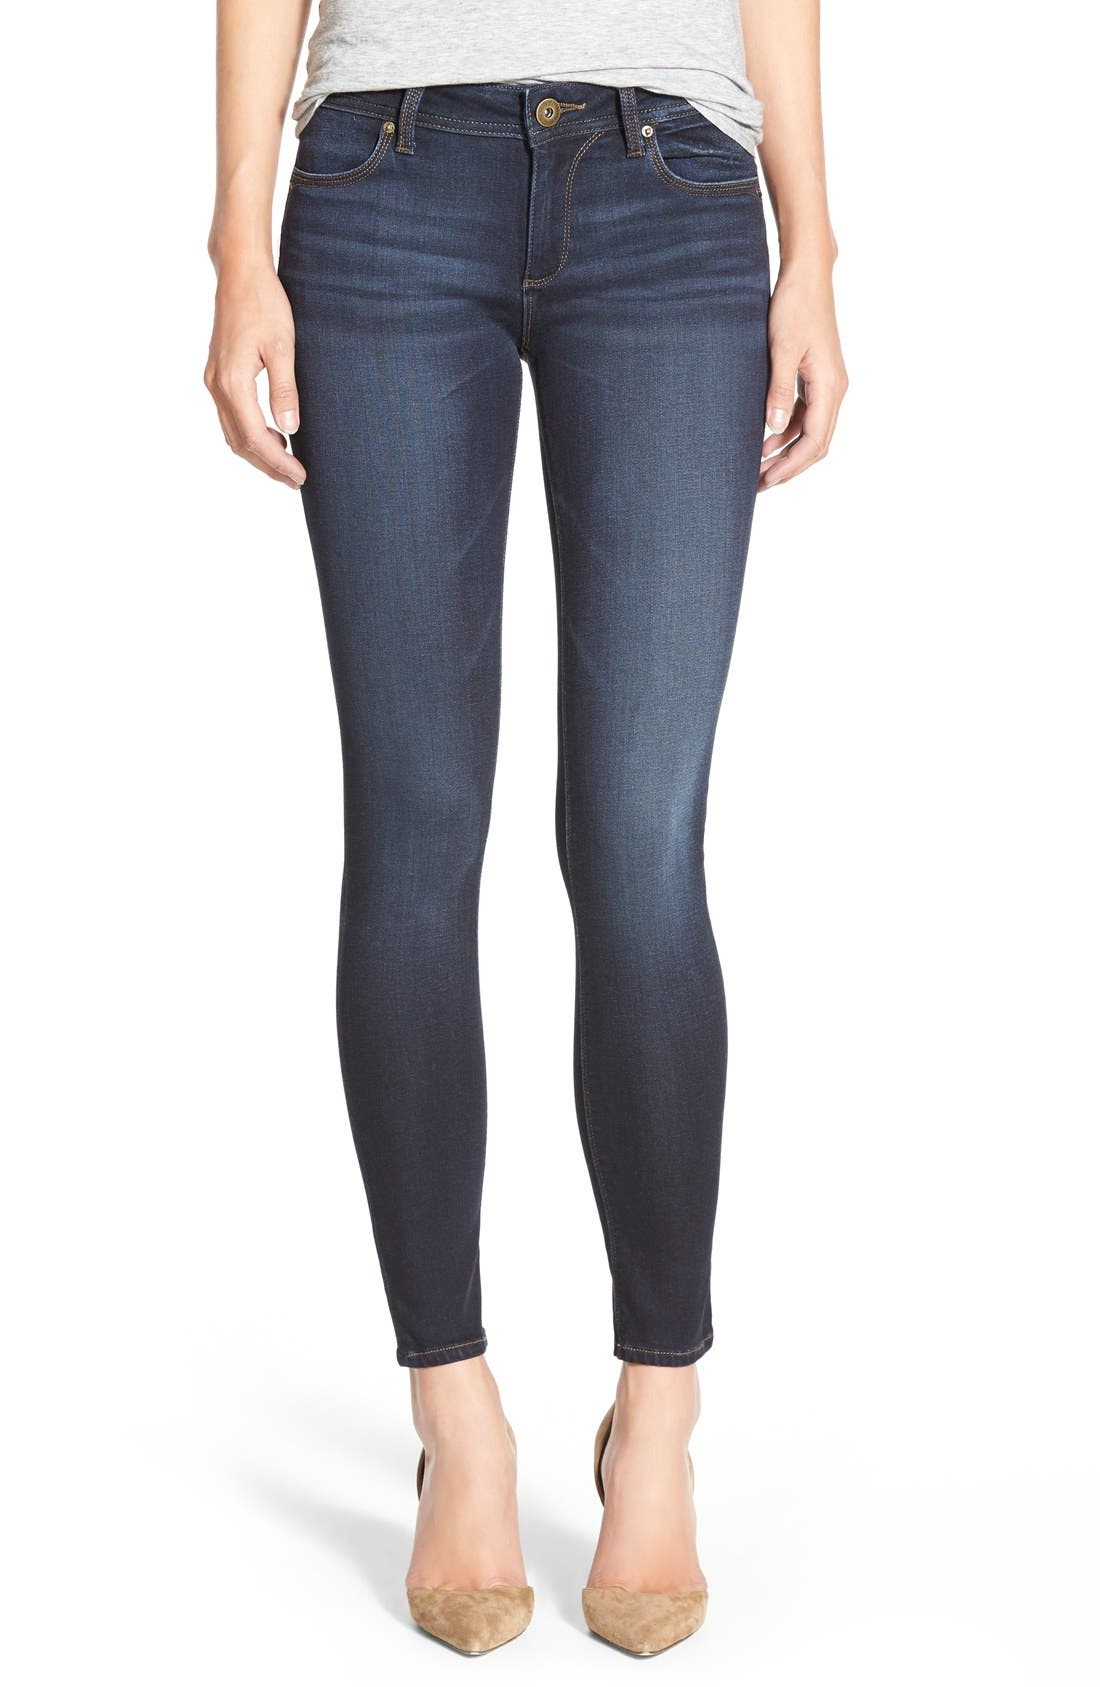 DL1961 'Emma' Power Legging Jeans